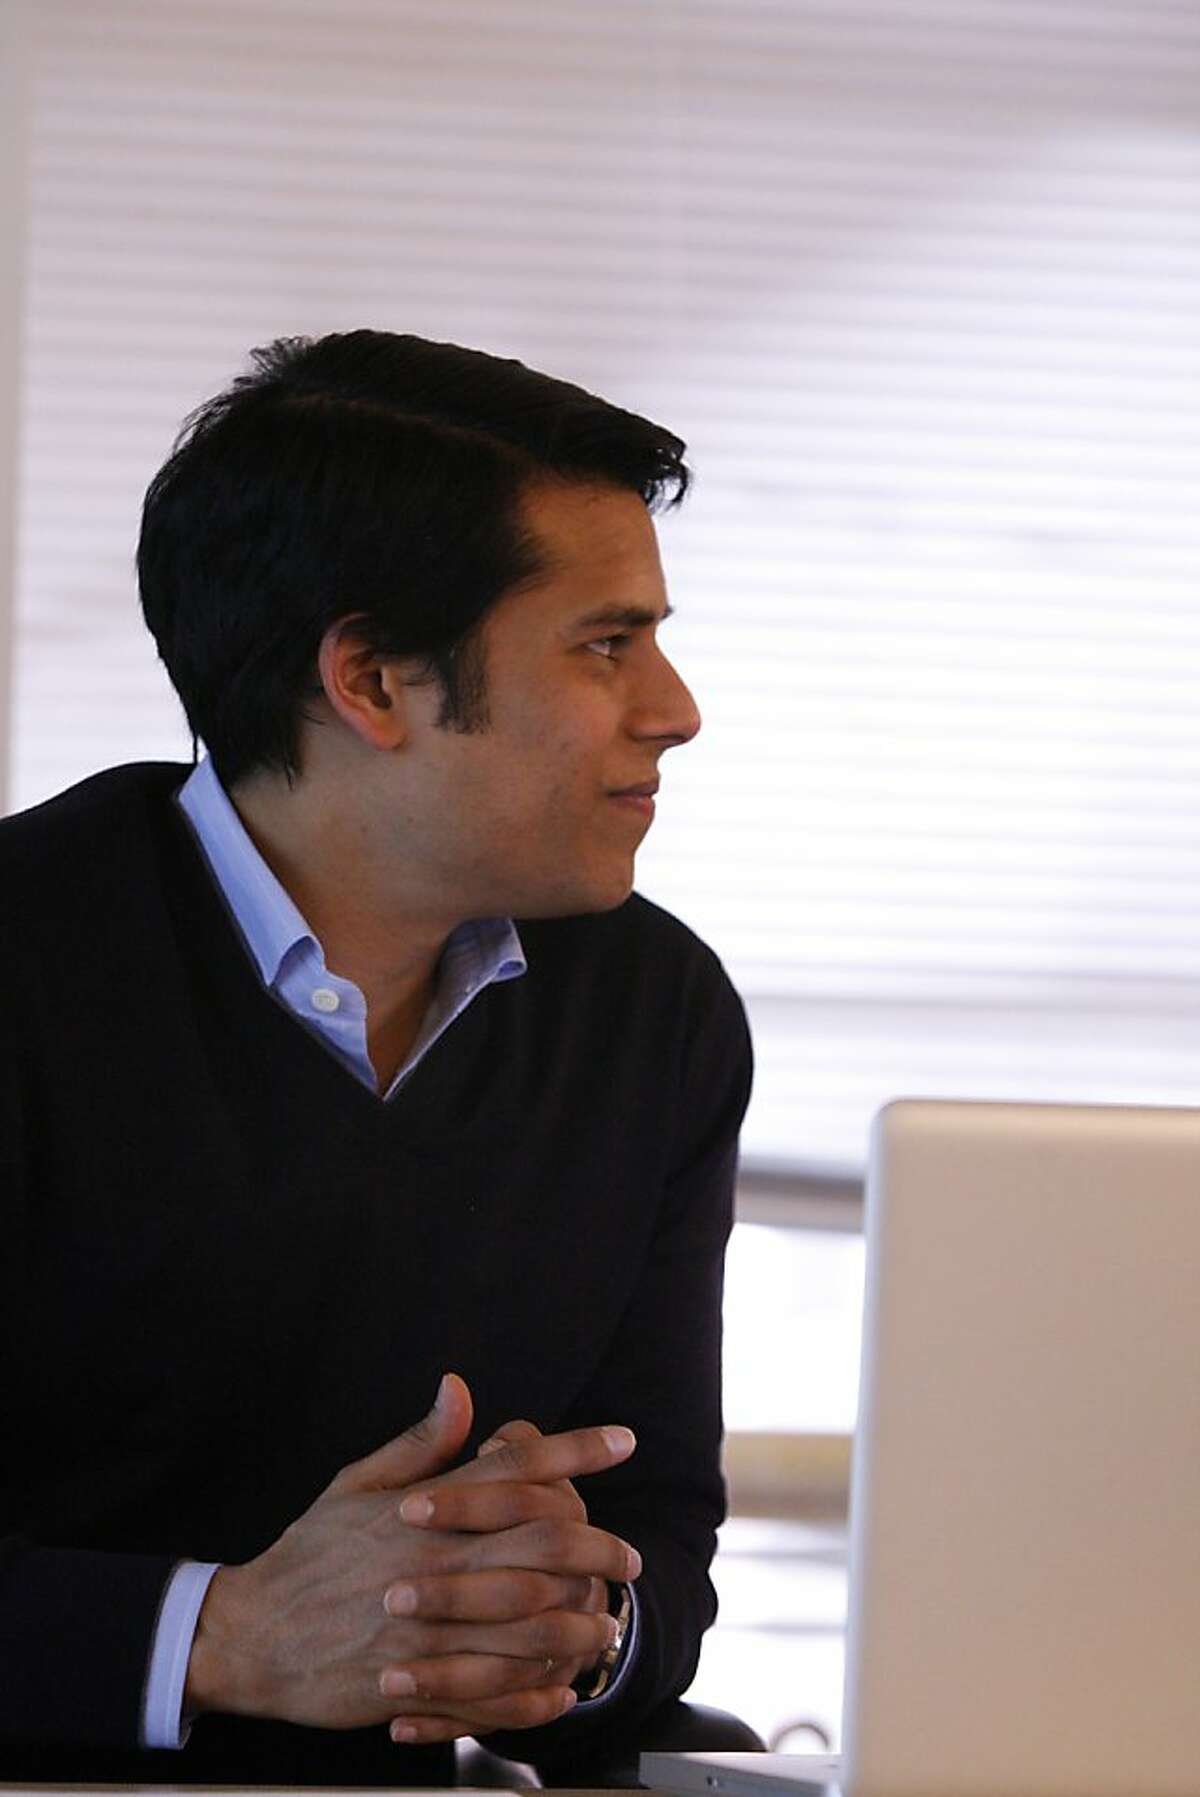 Nirav Tolia - the CEO of Nextdoor at the headquarters downtown San Francisco, California. Nextdoor is a private social network and creates connection between people in different neighborhood. The company lounged Nationally last October and has 30 employees as of today, February 21, 2012.